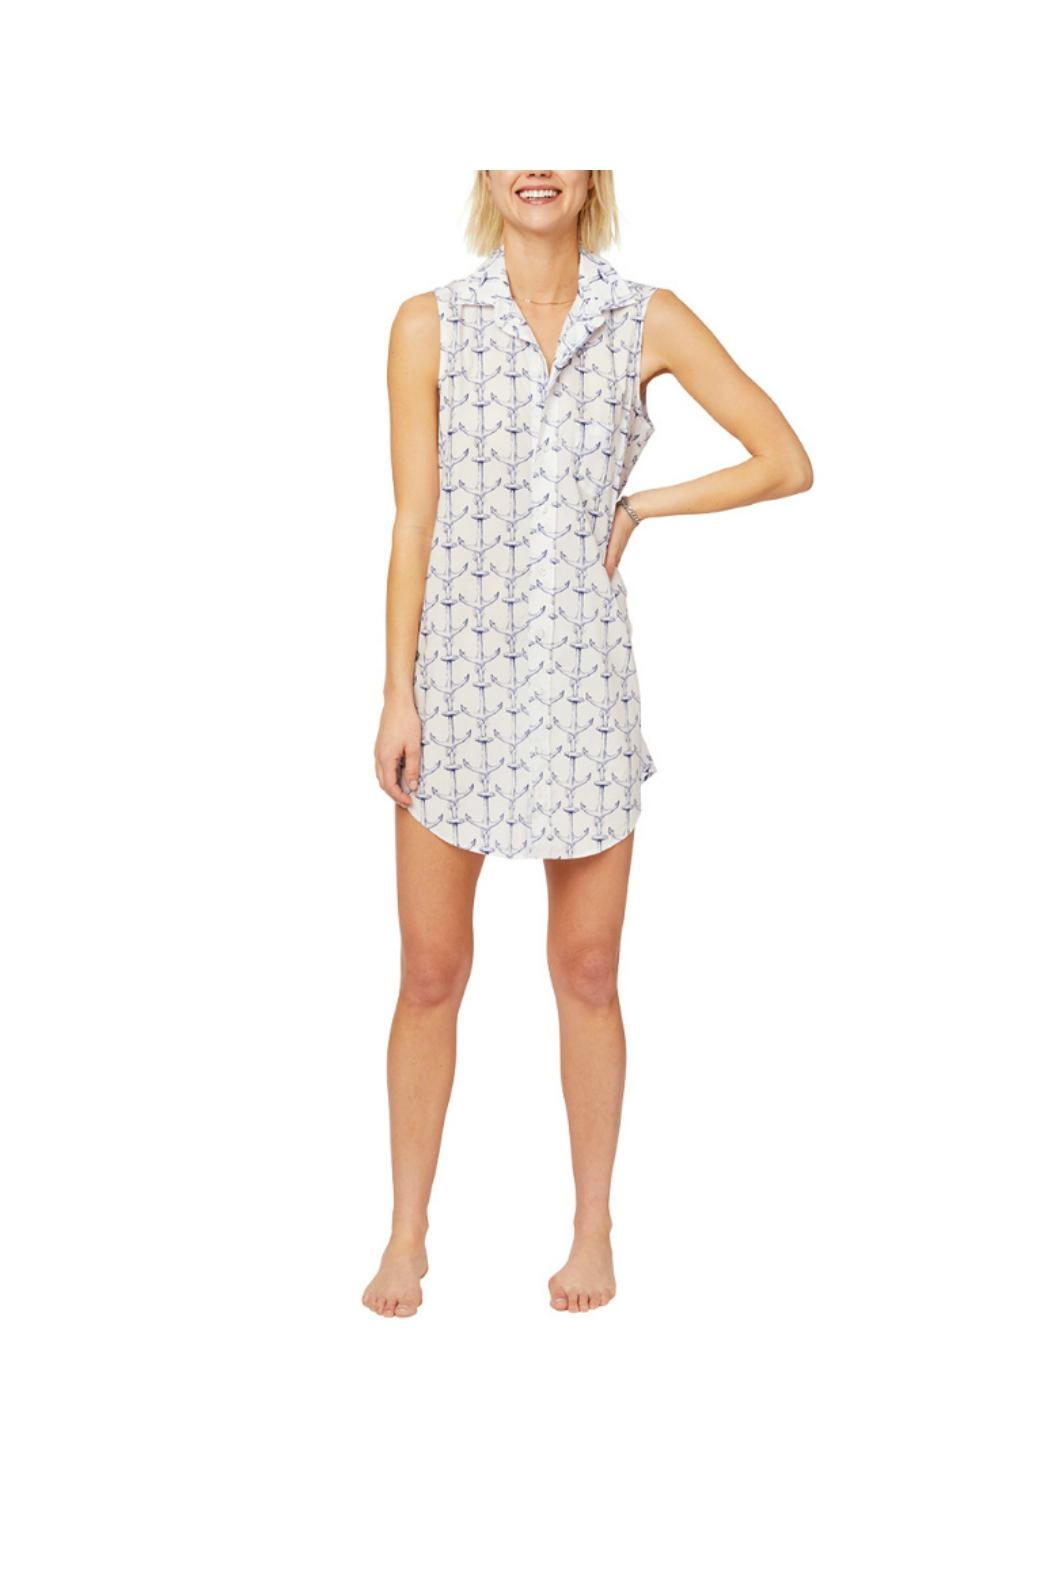 THE CATS PAJAMAS Anchor Sleeveless Nightshirt - Main Image